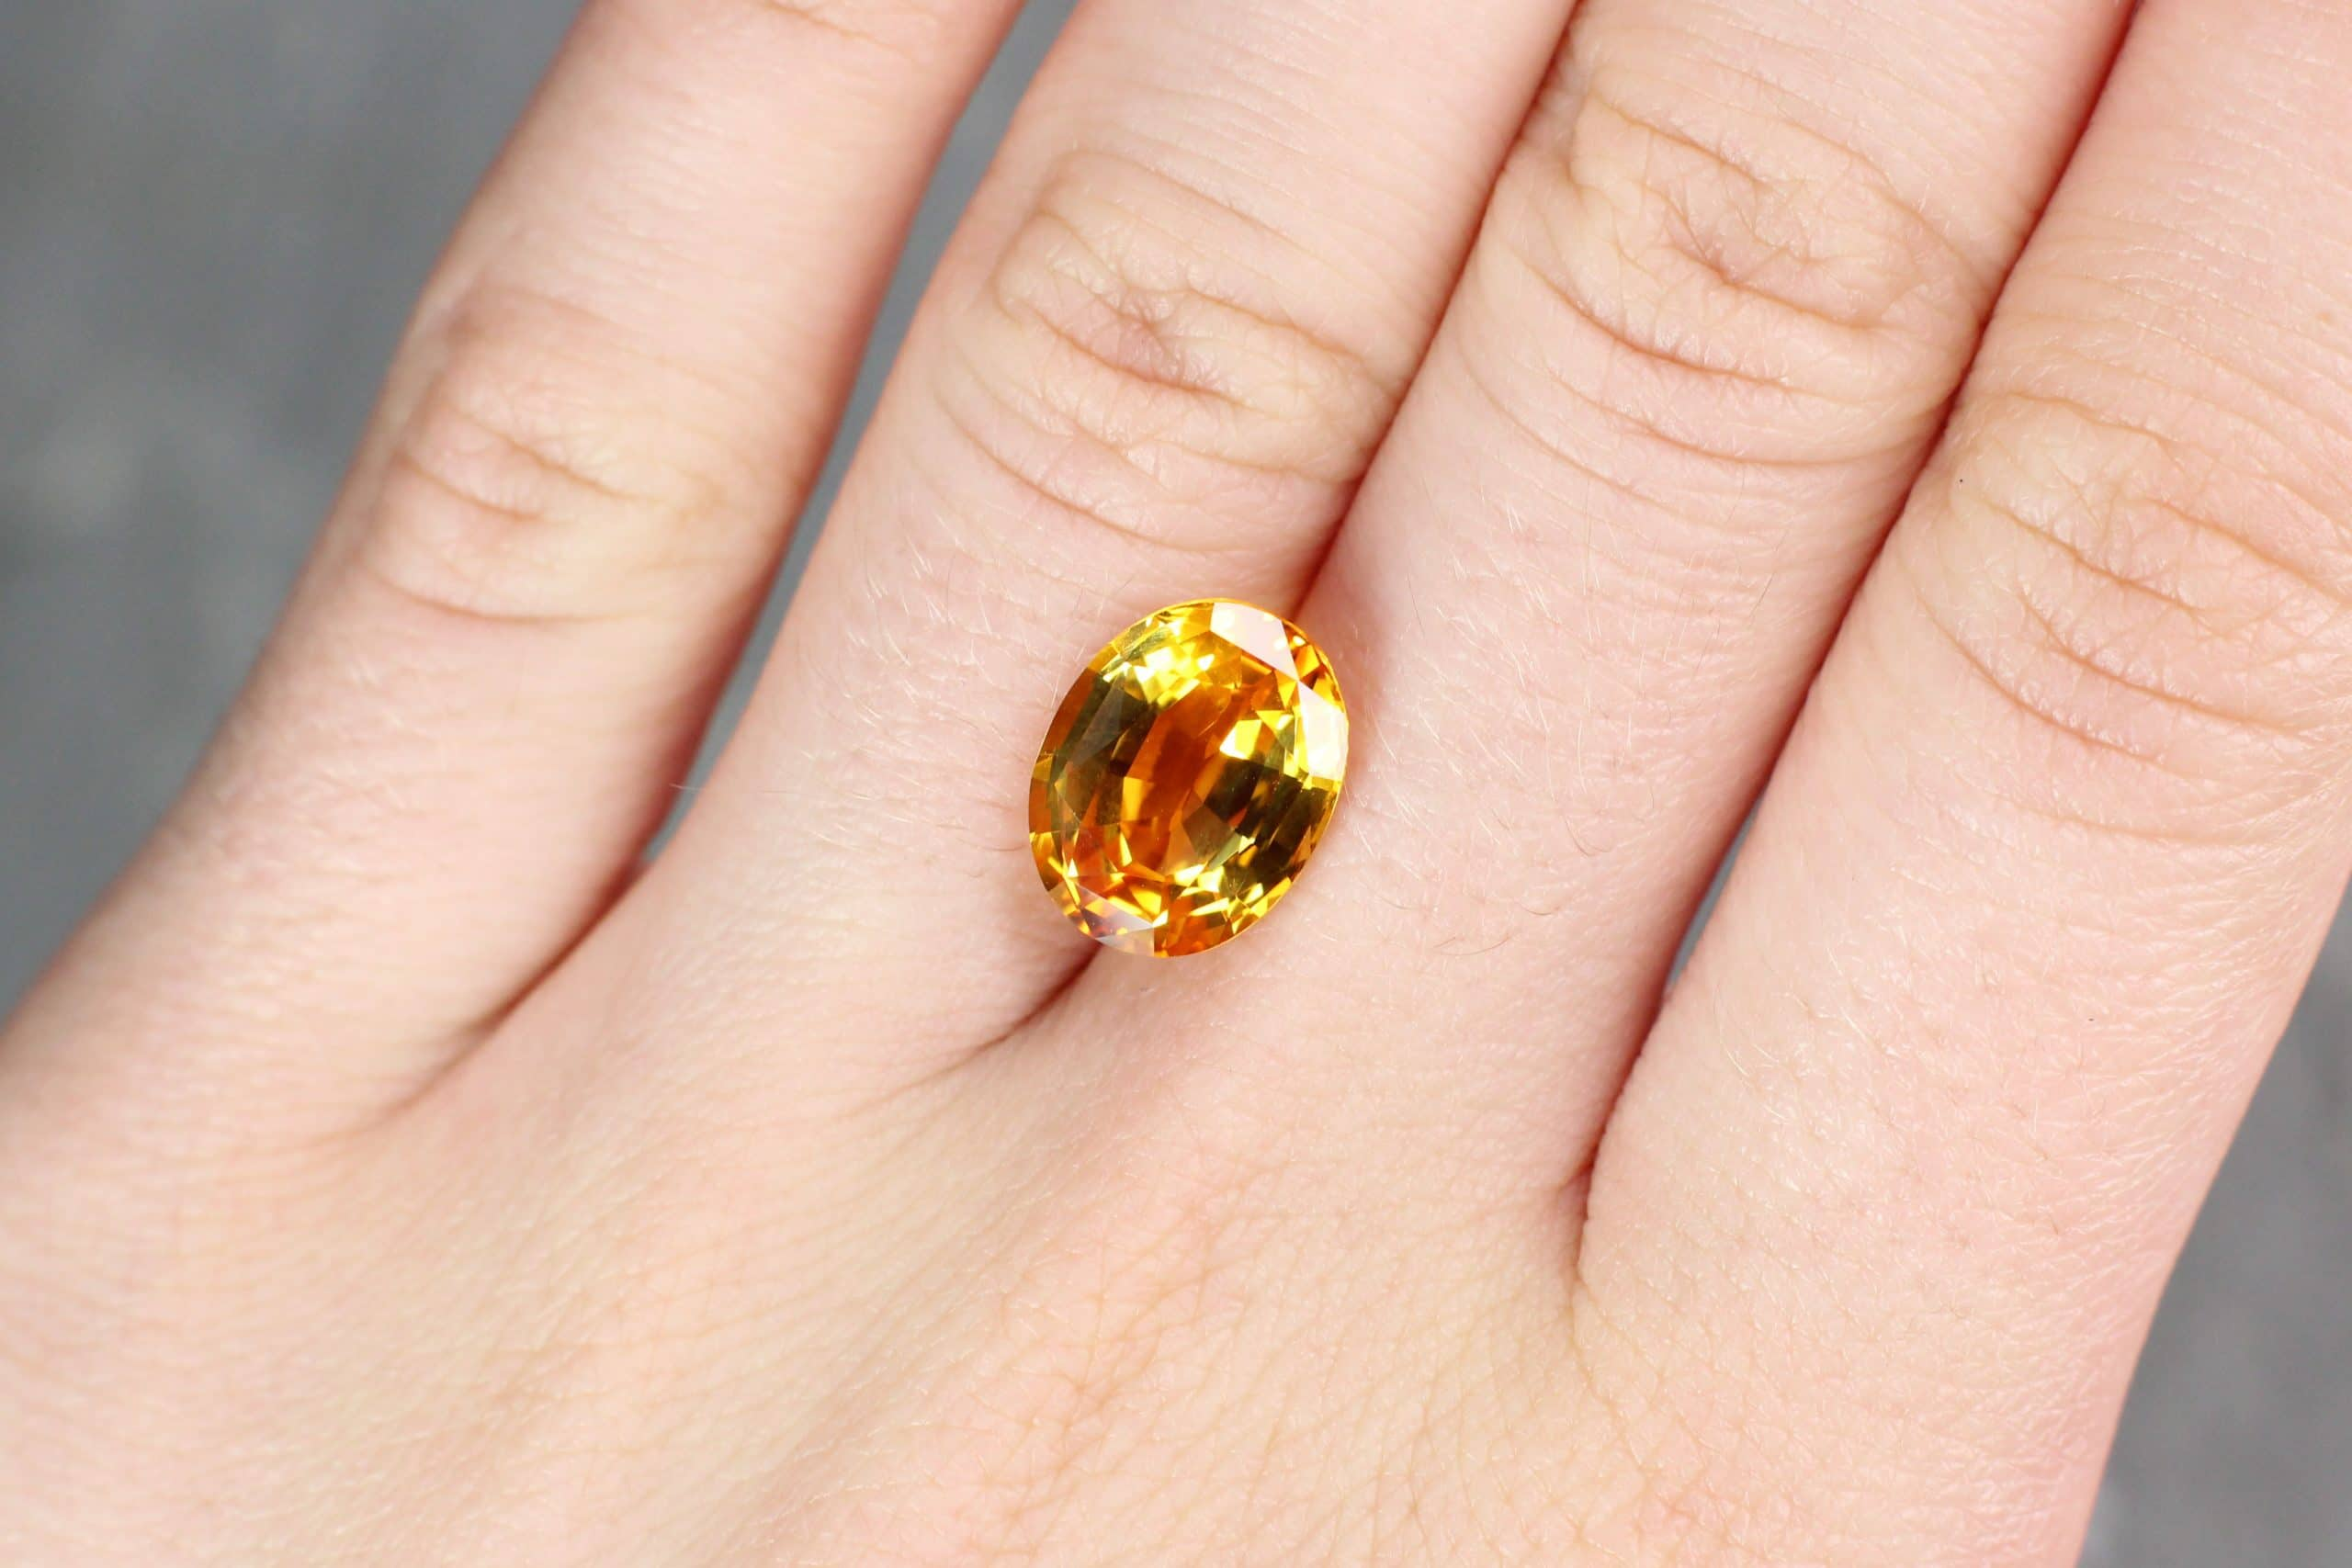 6.3 ct yellow oval sapphire